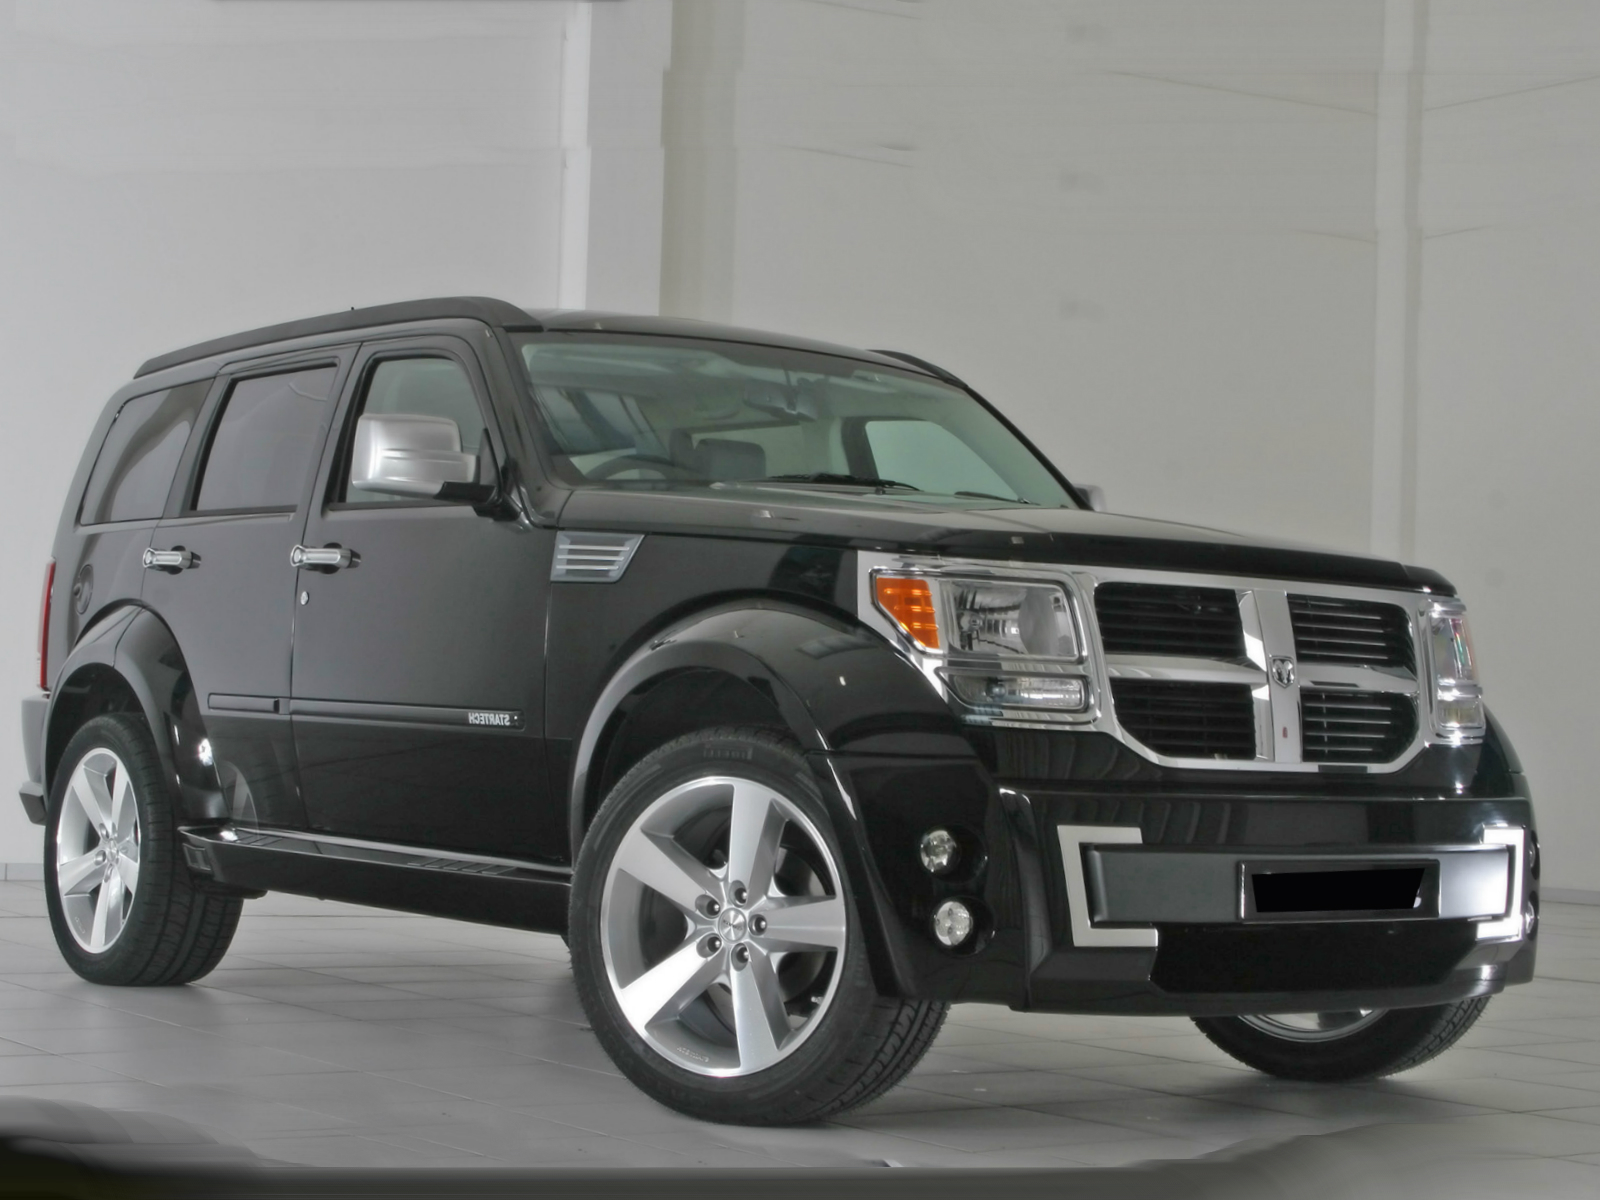 dodge nitro 2011 reviews dodge nitro 2011 car reviews. Black Bedroom Furniture Sets. Home Design Ideas